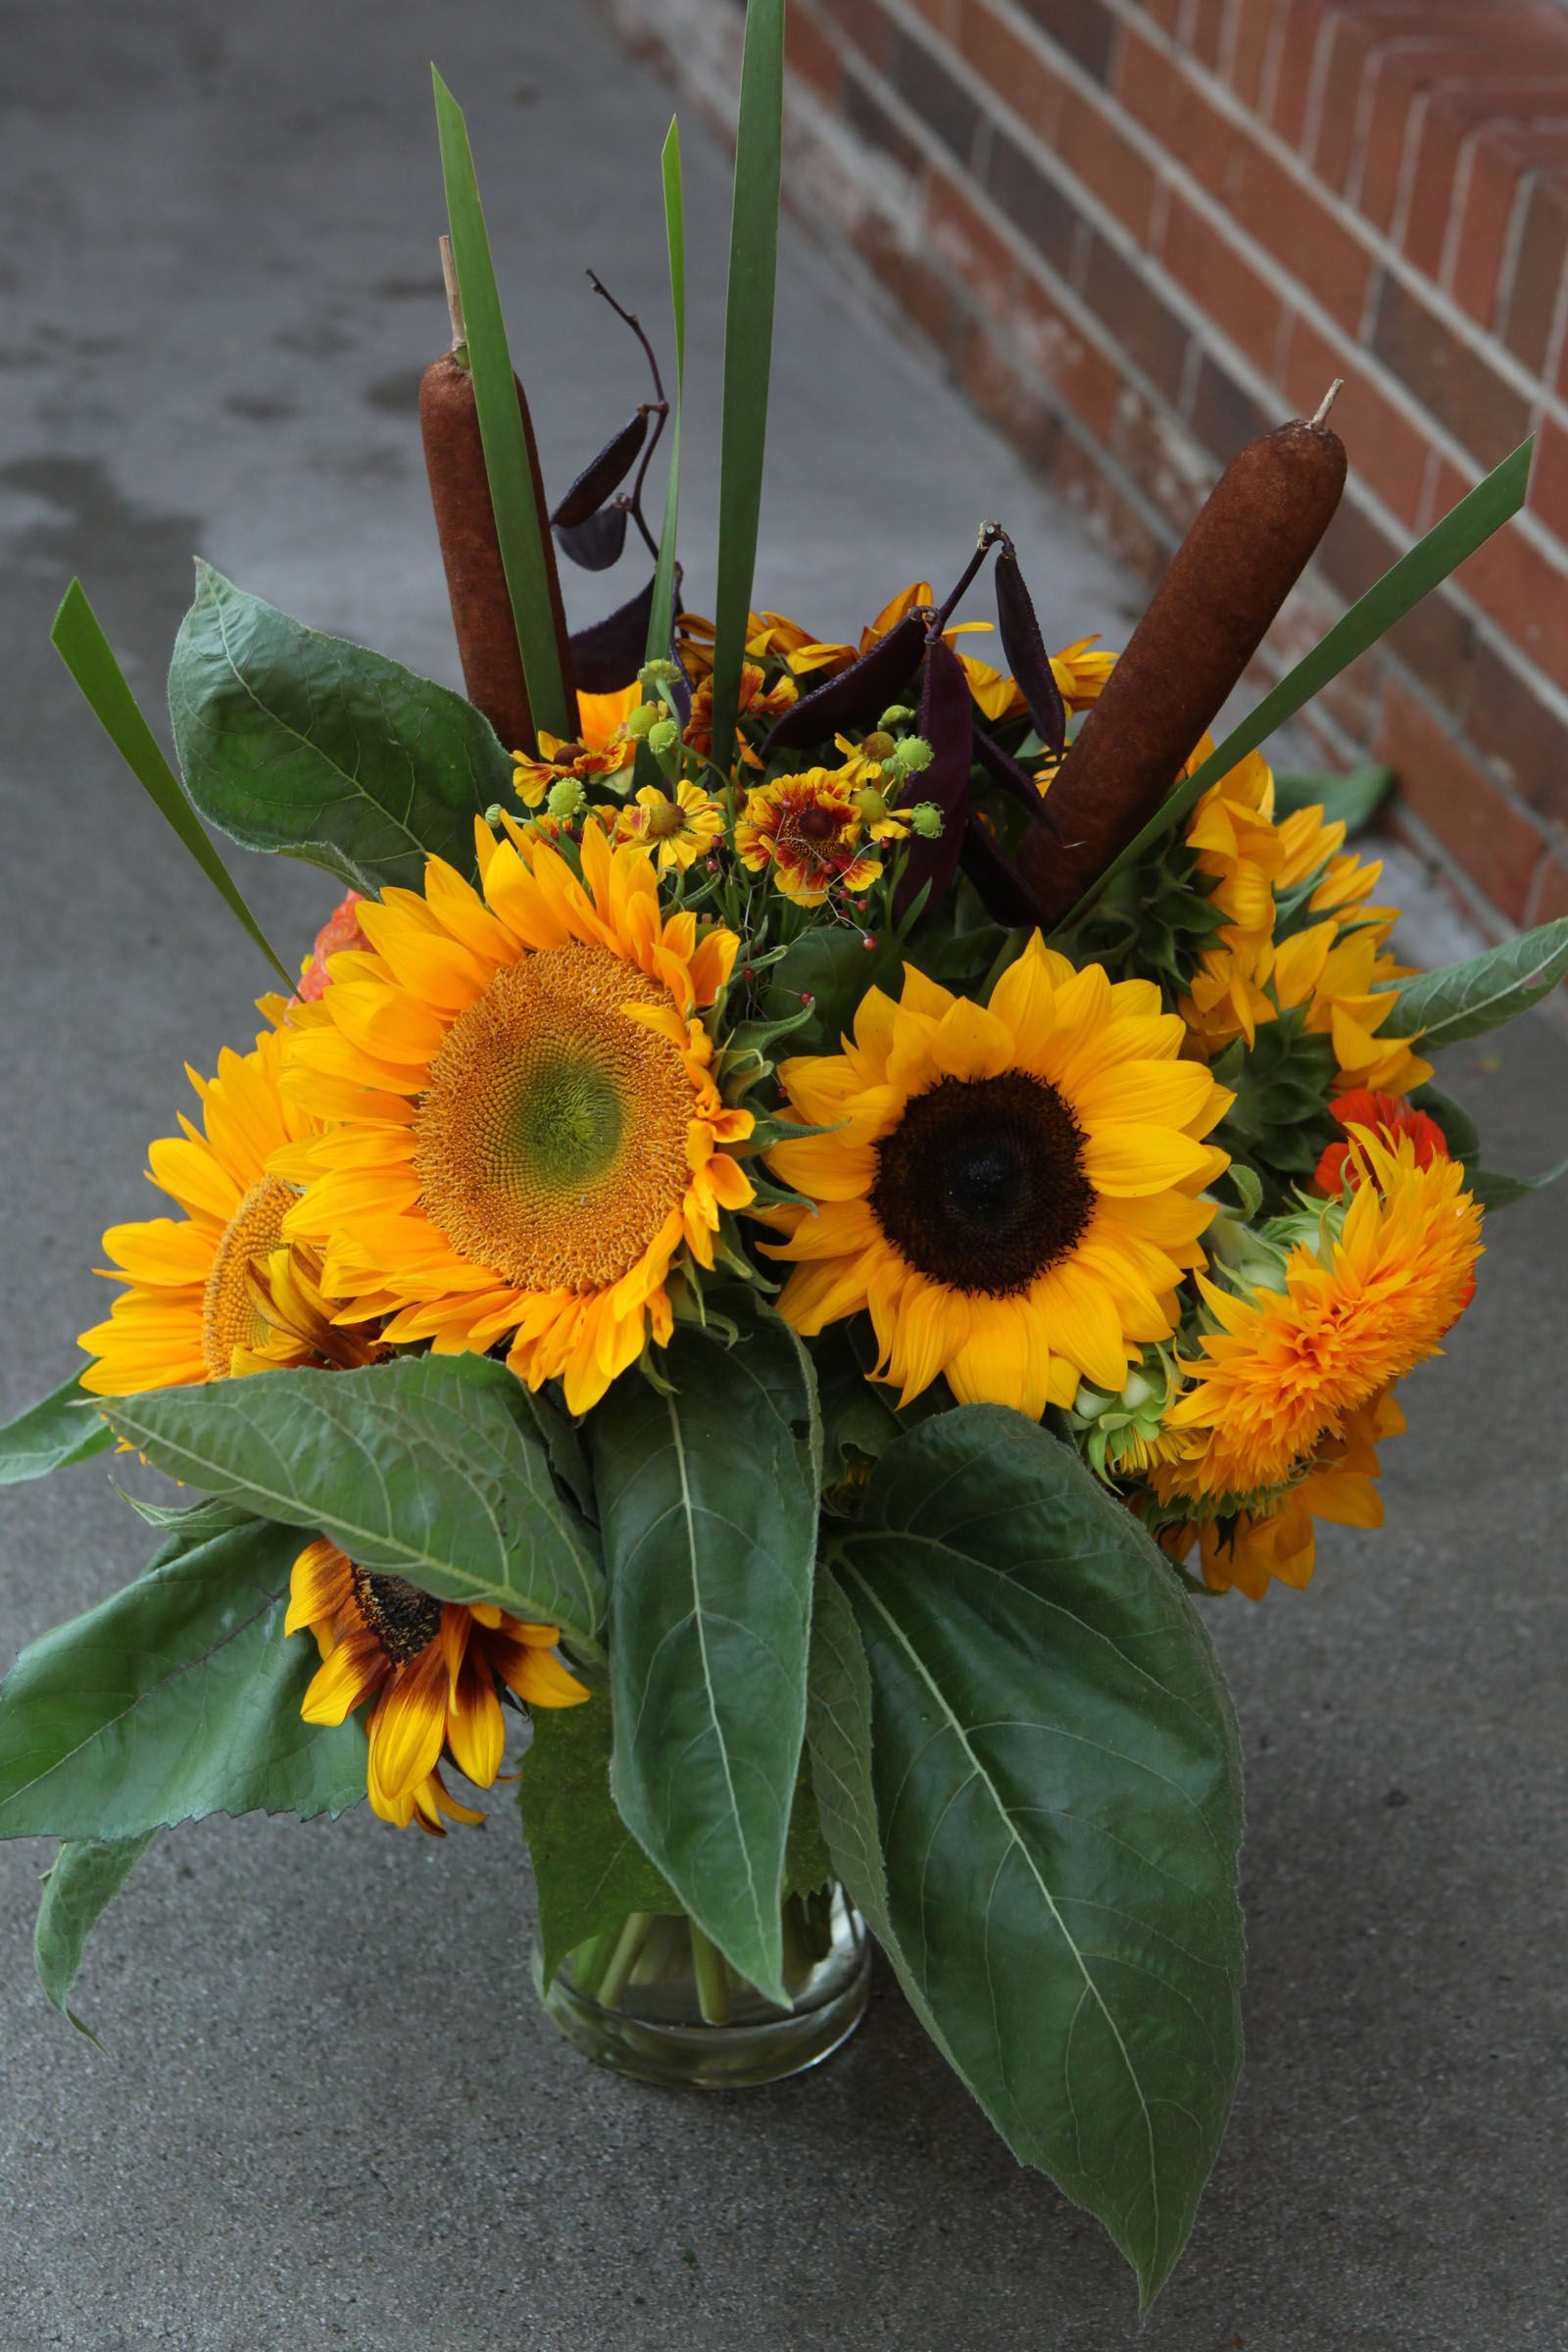 Sunflower arrangement with local cattails and sunflowers